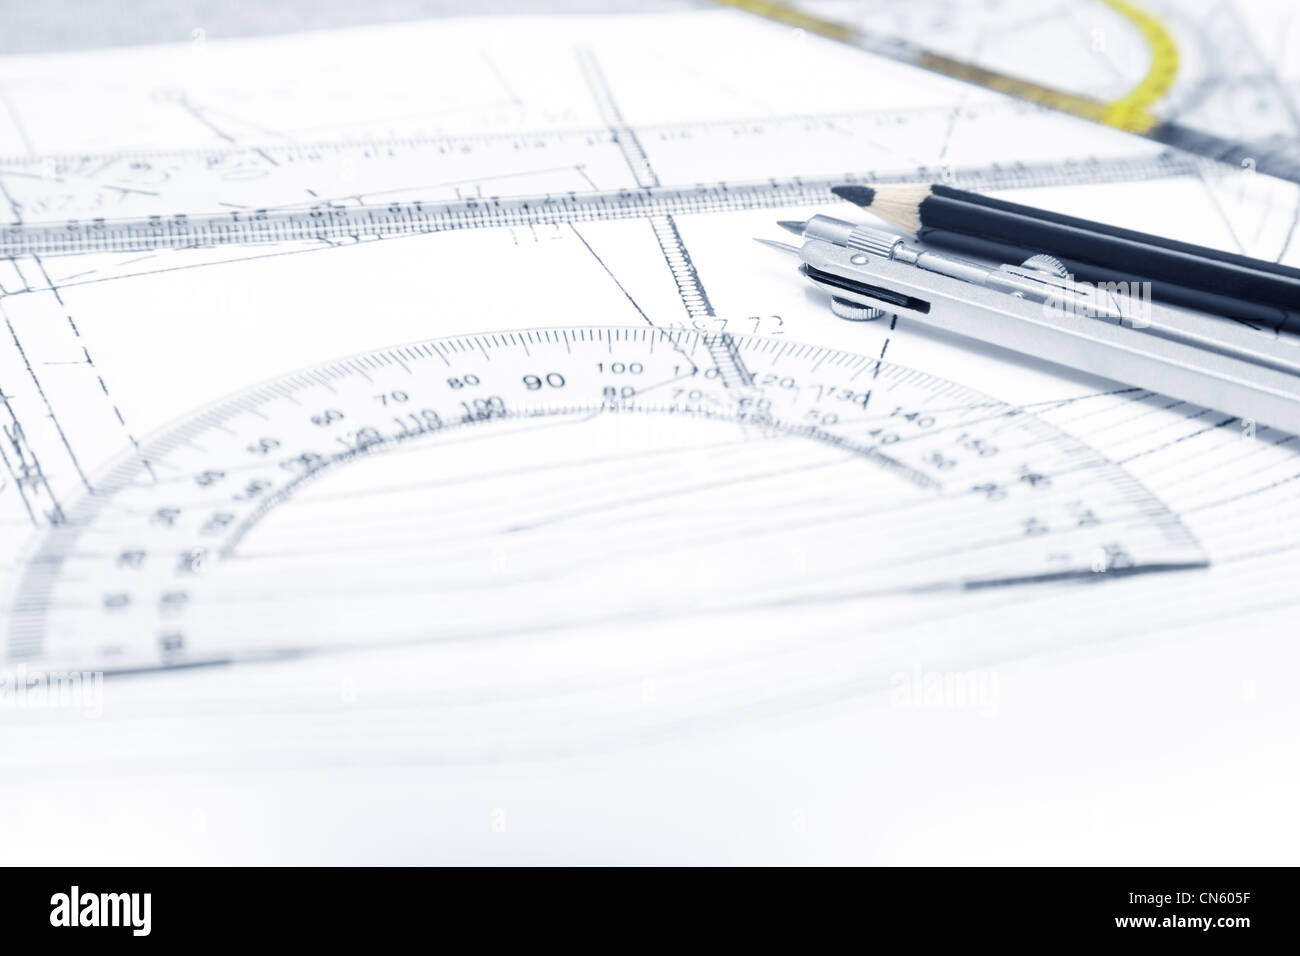 Scheme with compasses rulers and pencil. Close-up photo - Stock Image